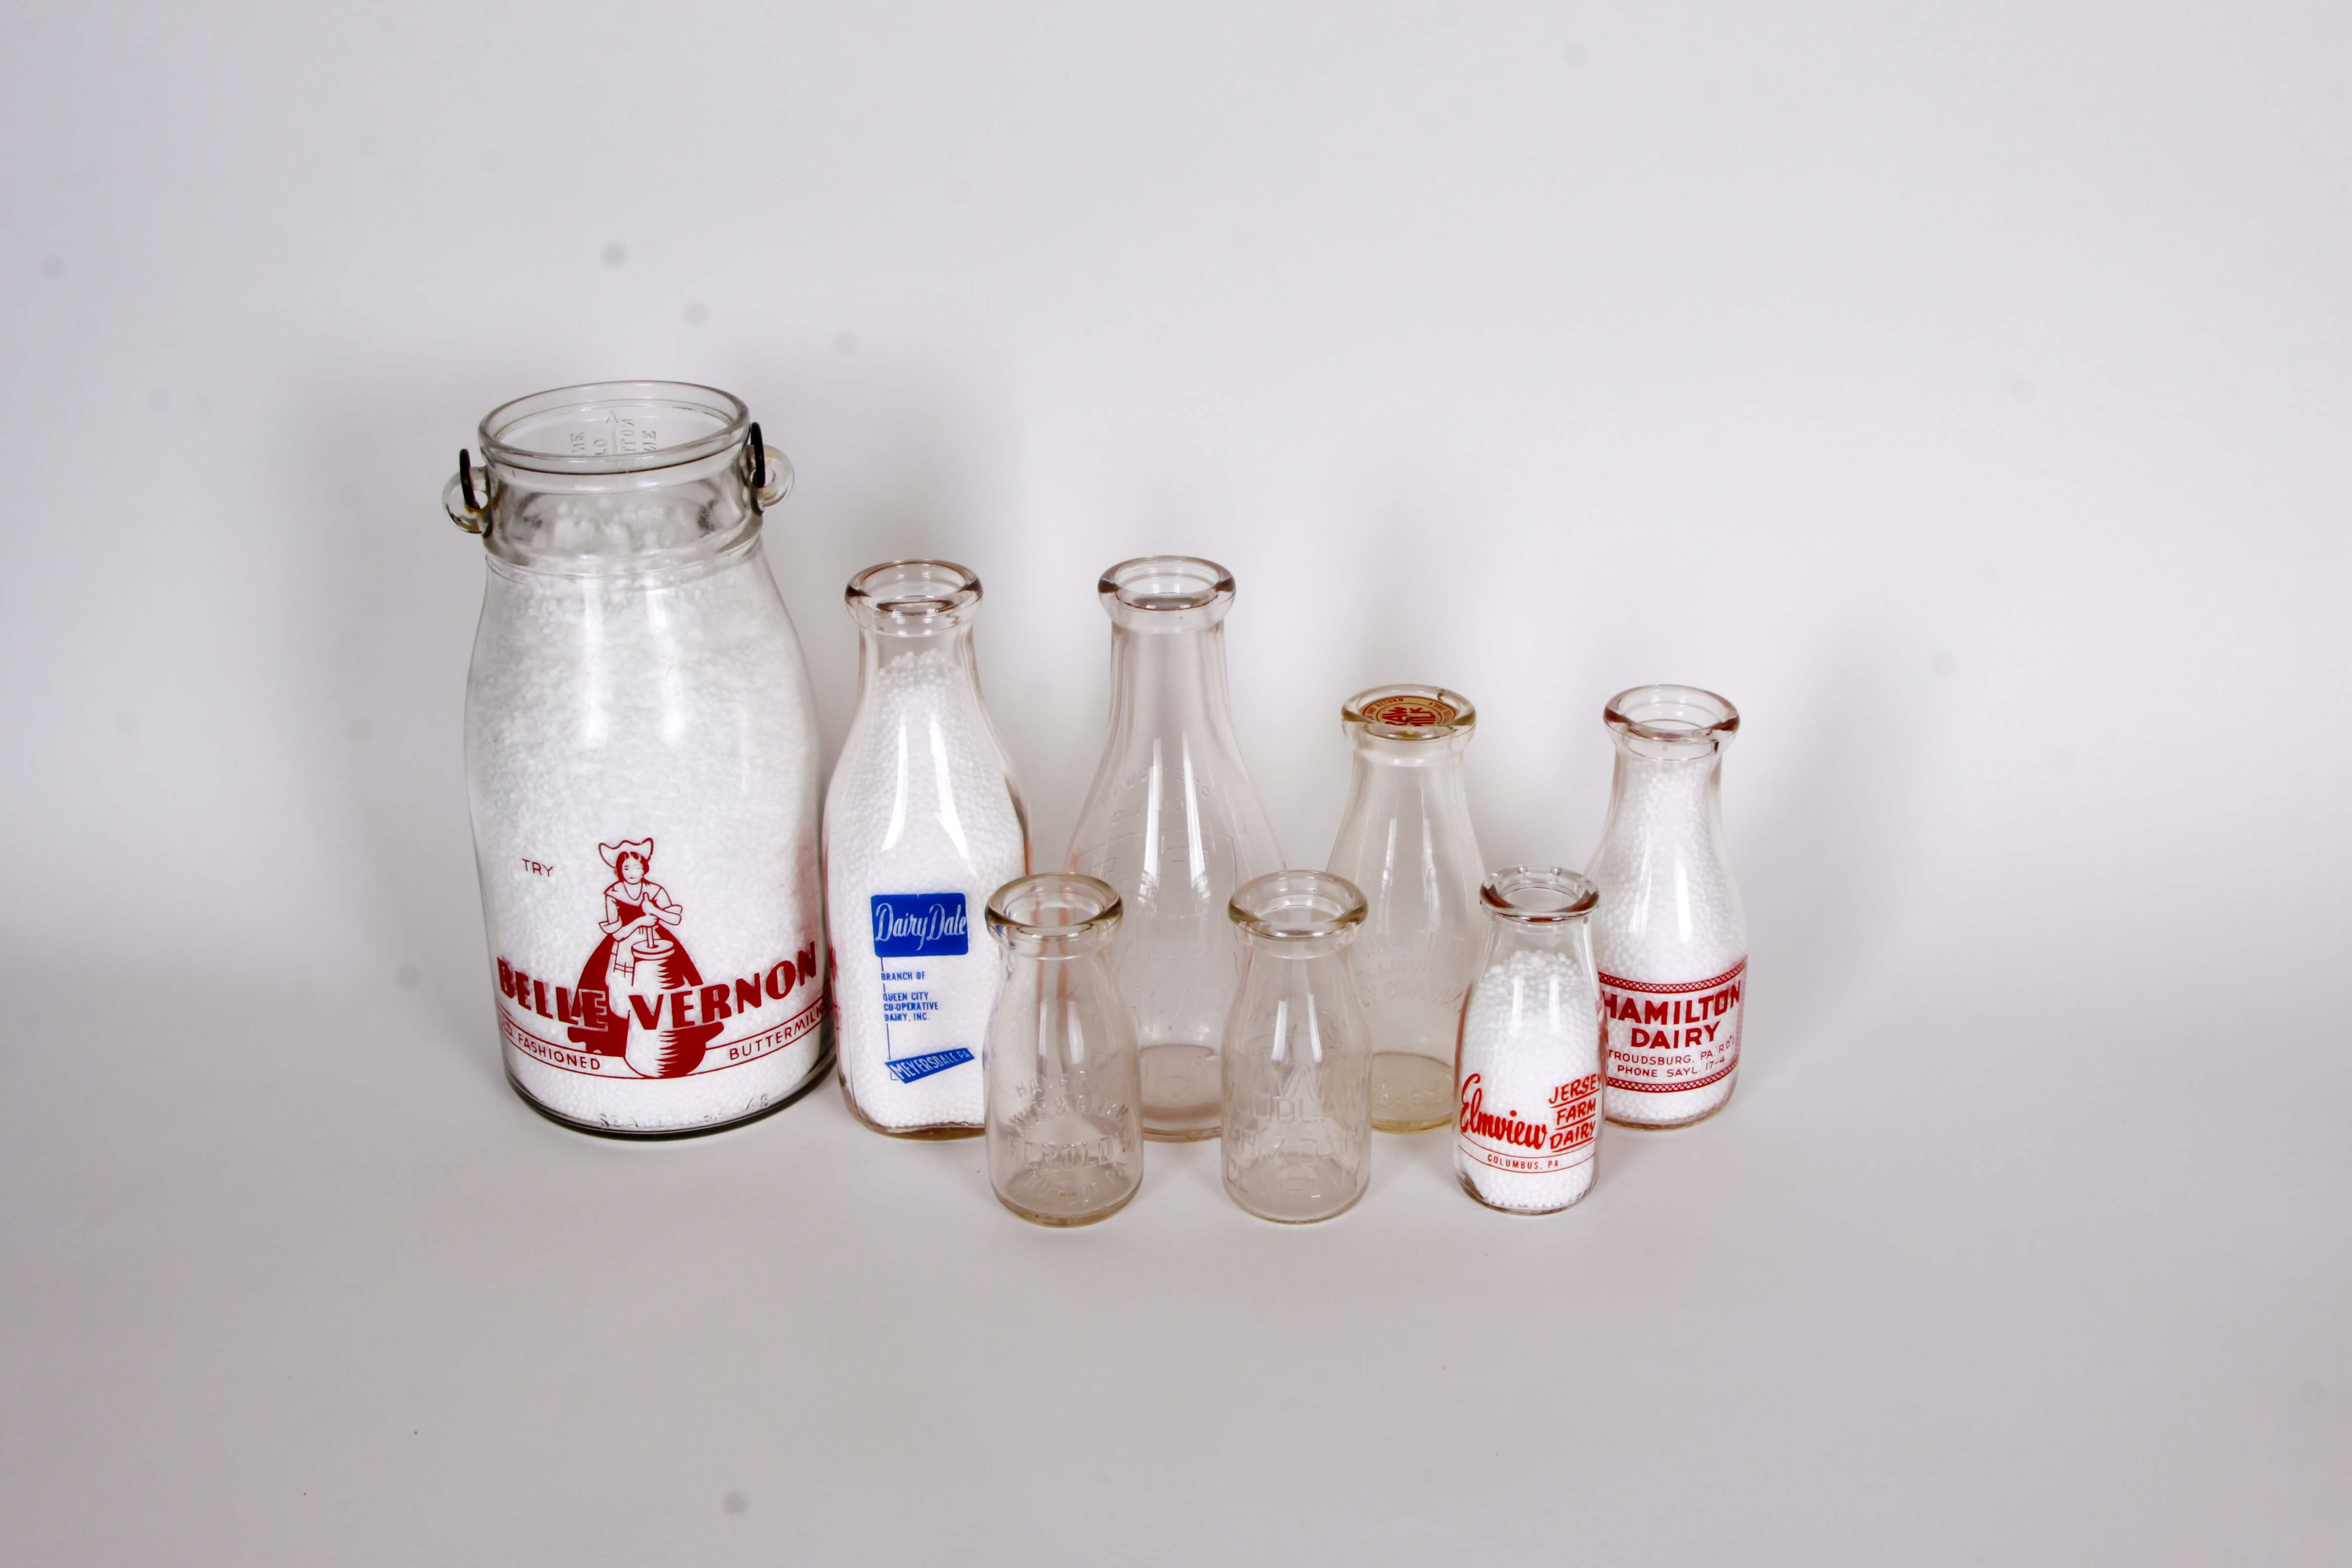 Collection of Vintage Pennsylvania Bottles I